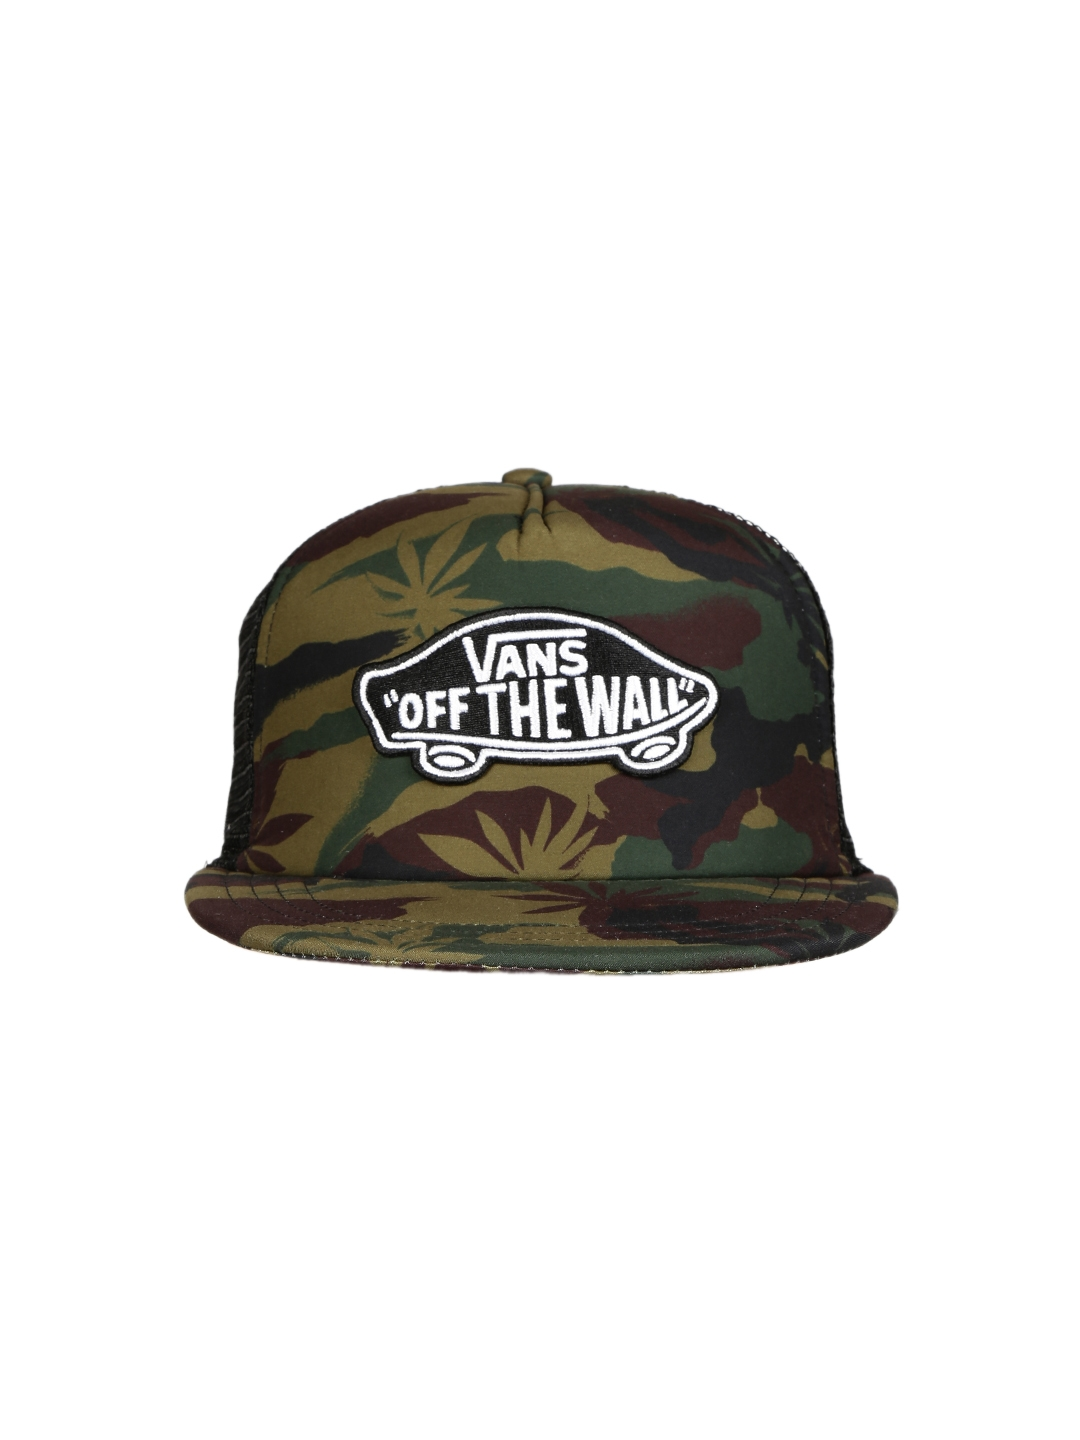 02149e7d332 Buy Vans Men Black   Green Camouflage Print Classic Patch Trucker Cap - Caps  for Men 1869705